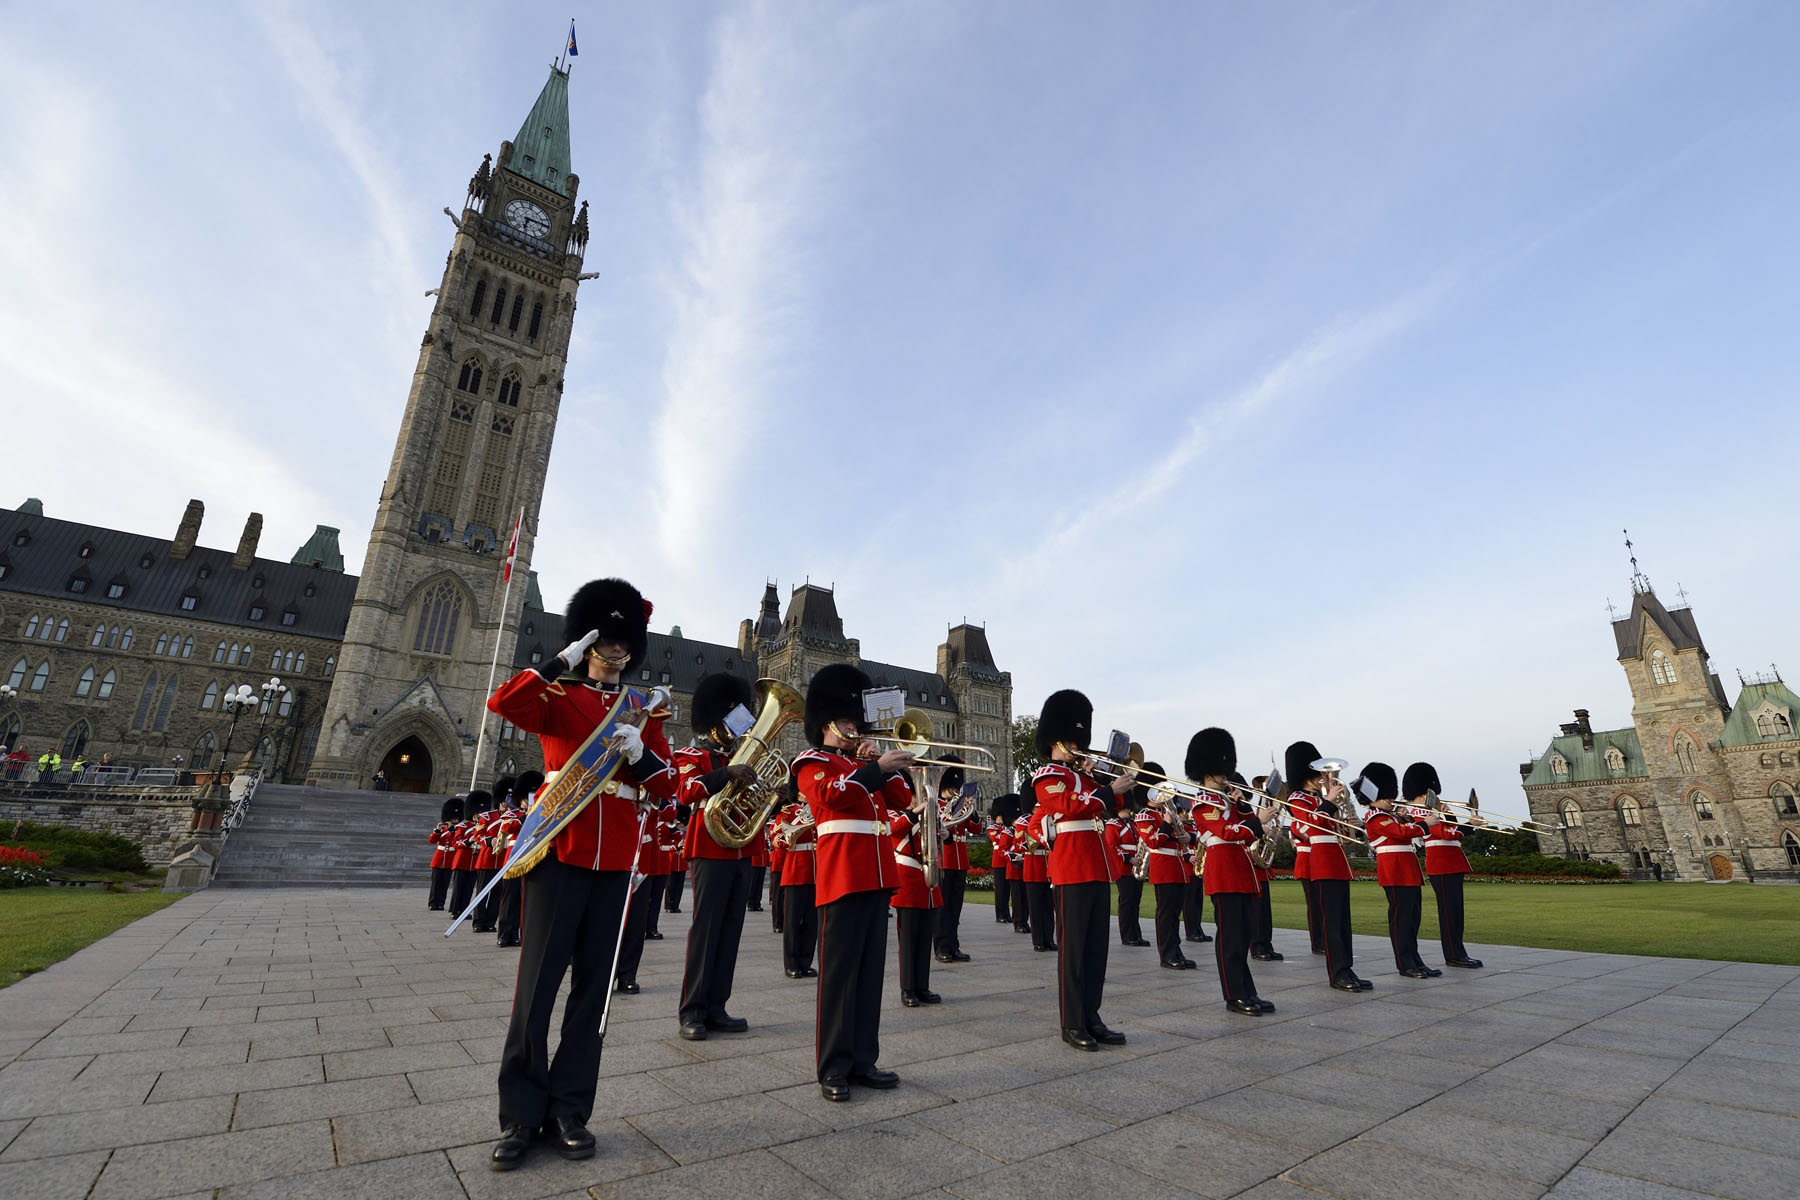 La Musique du R22R was also on site to commemorate this milestone in the history of the Canadian Army.